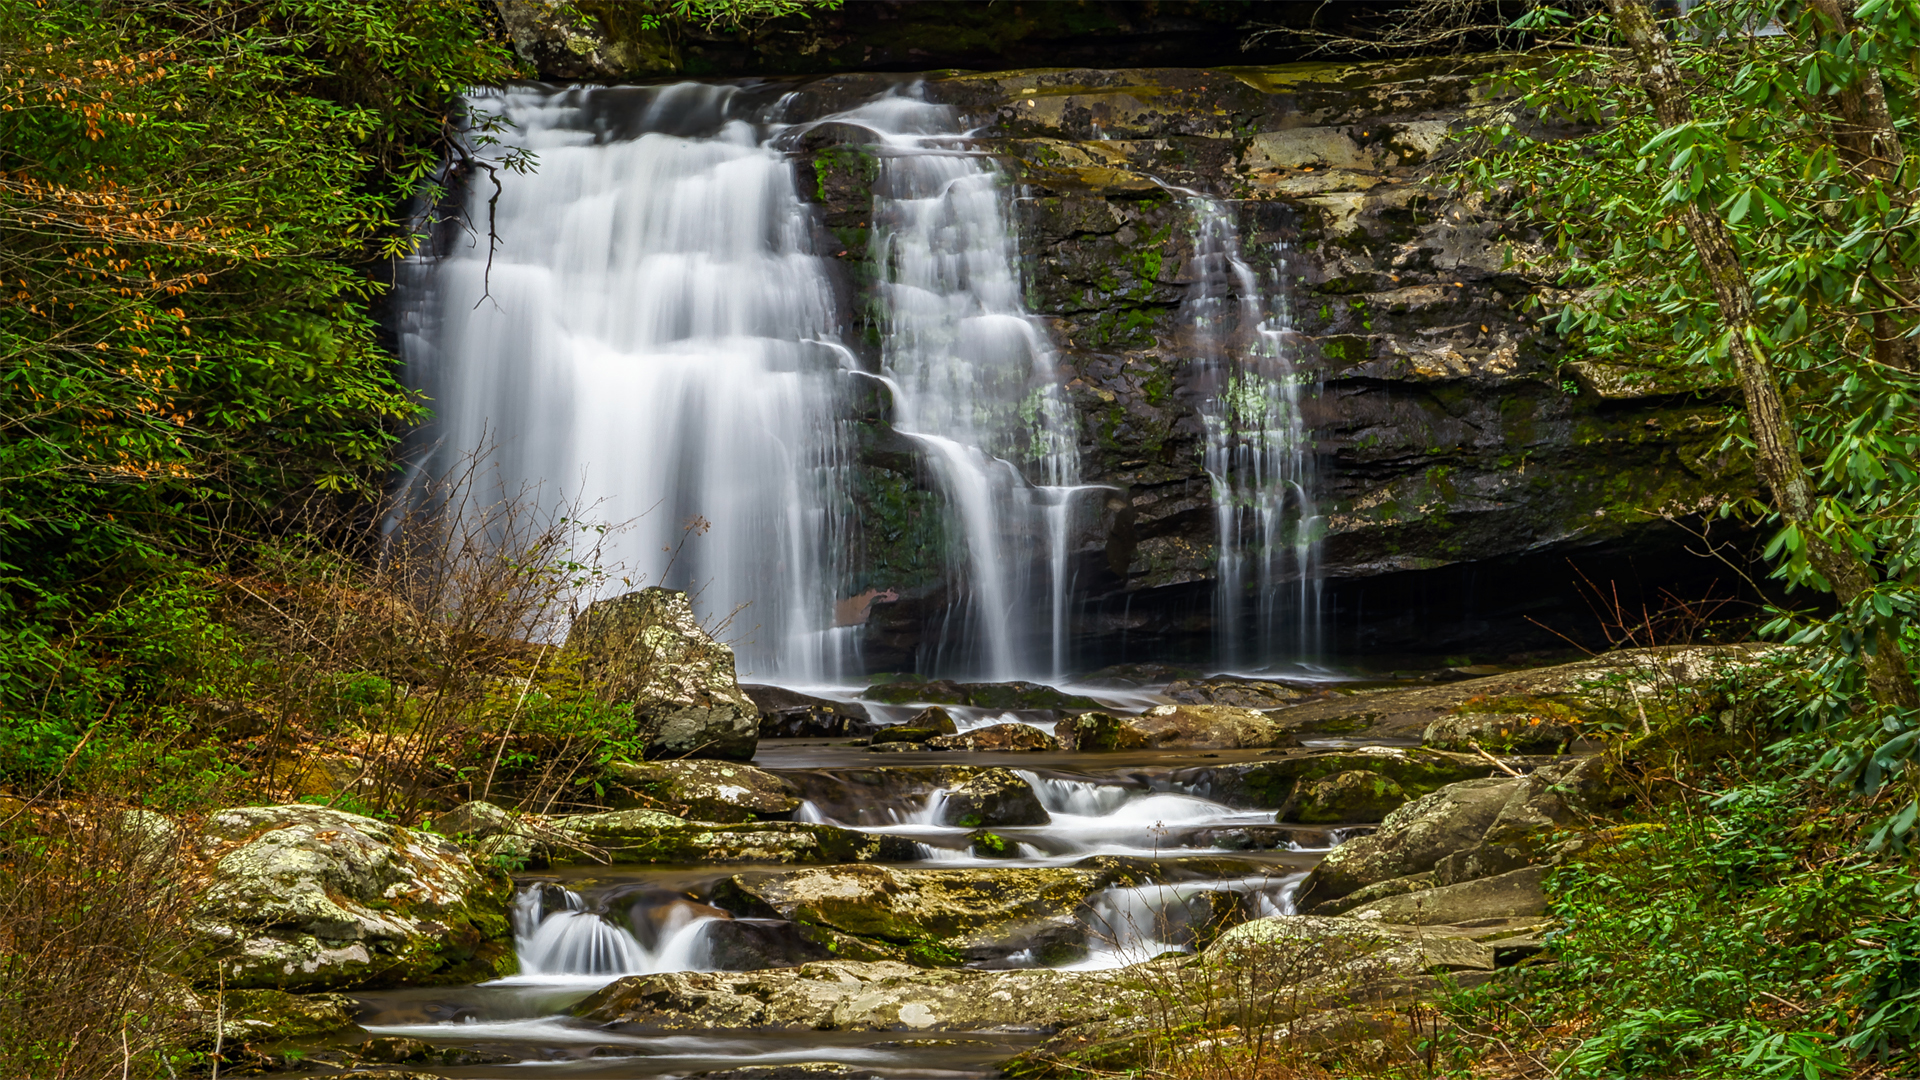 Gatlinburg-Potter Creek Falls1a